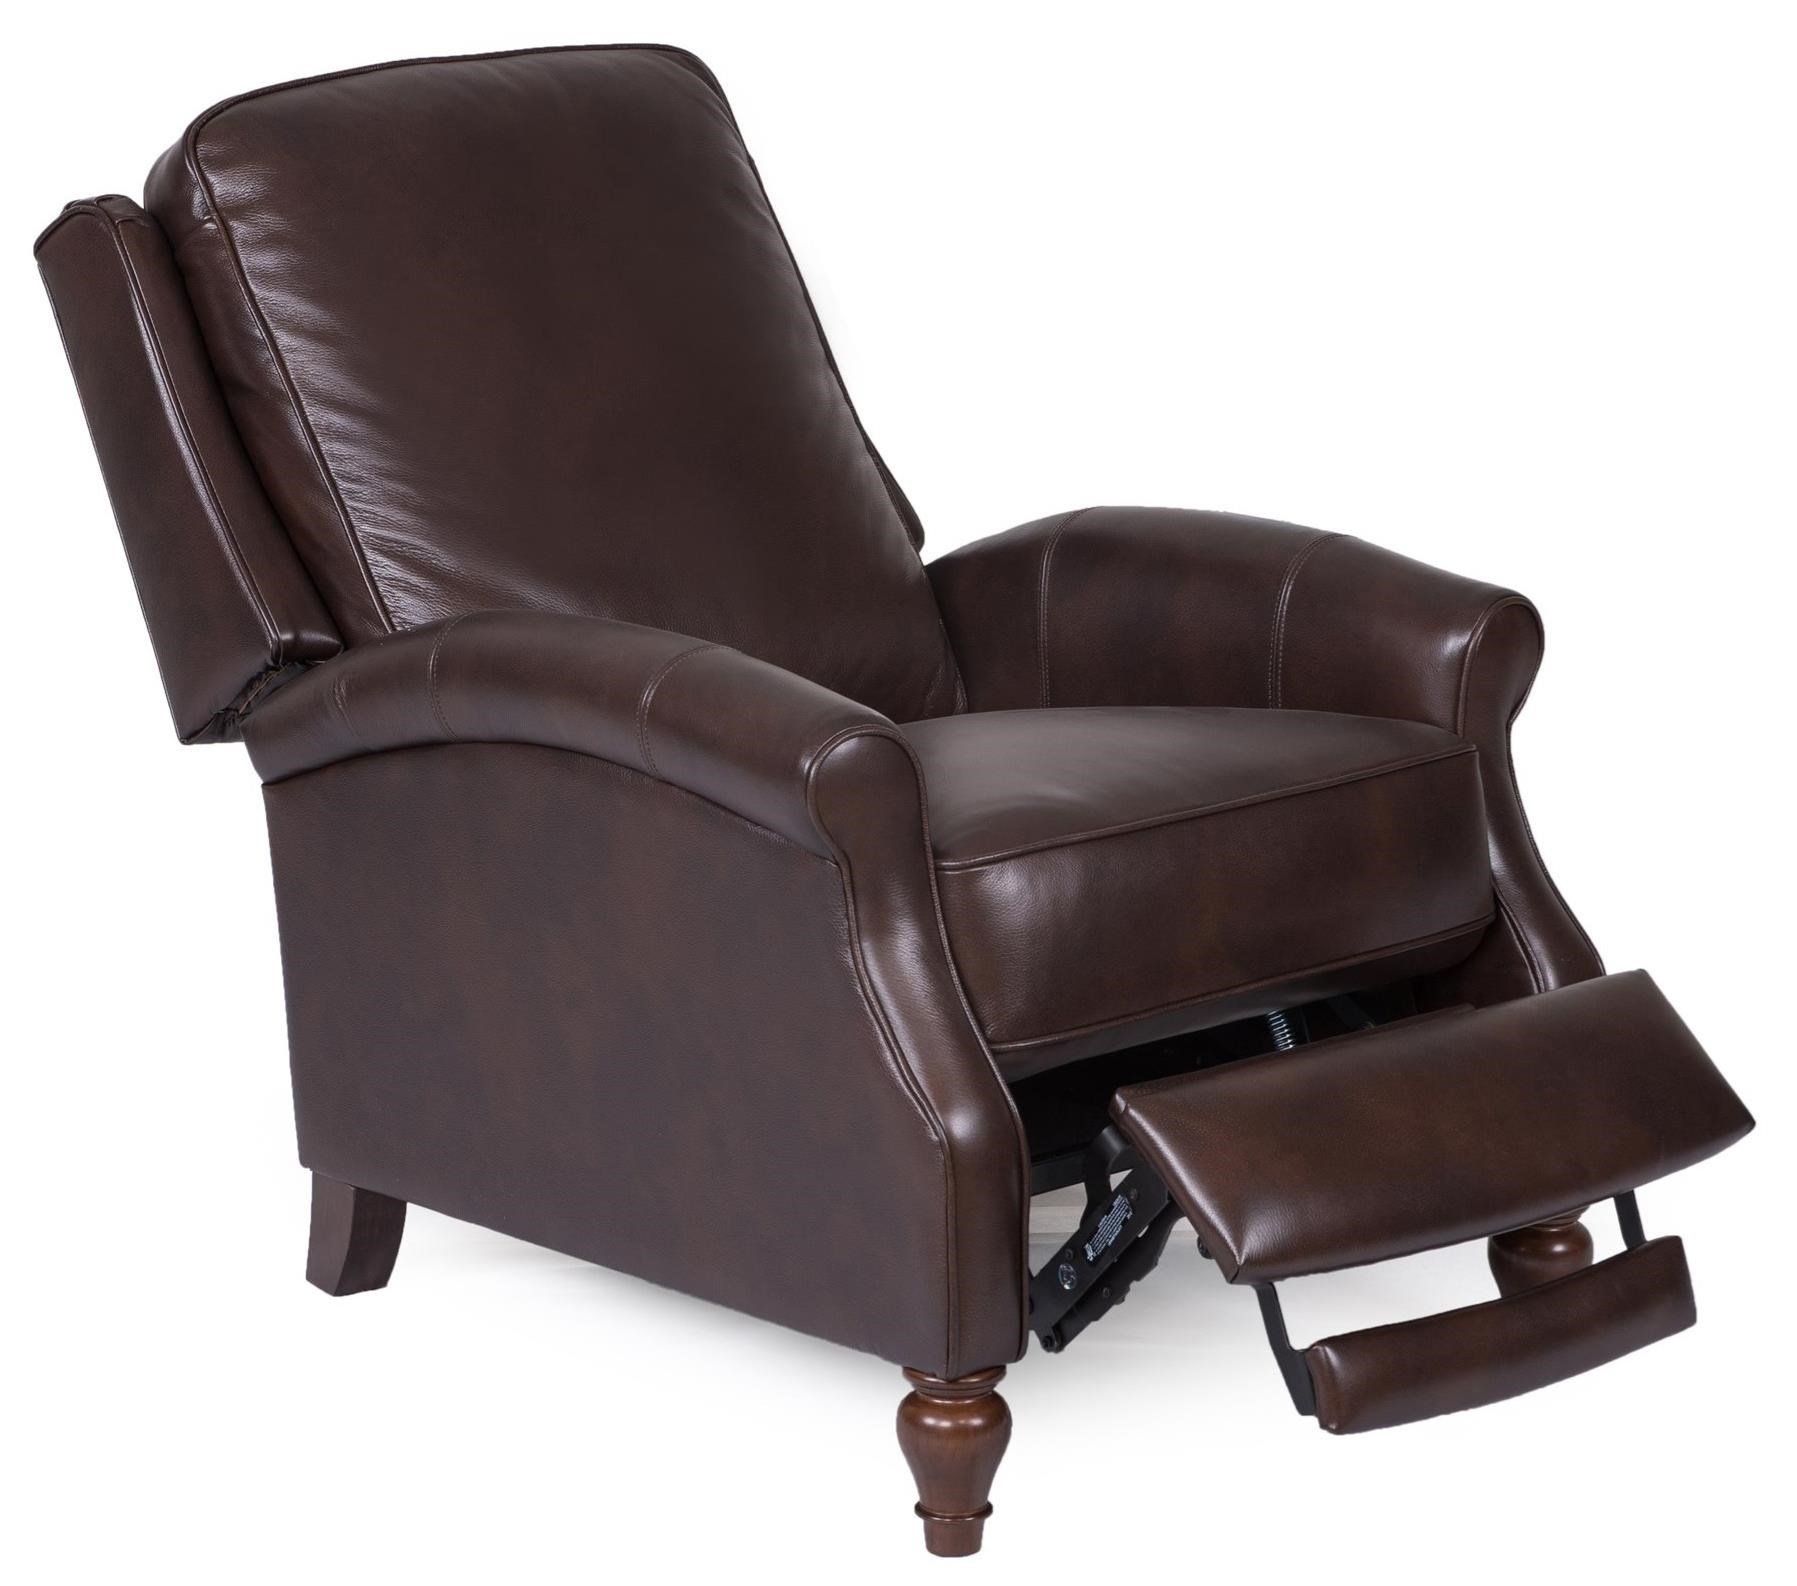 Synergy Home Furnishings 1267 Leather Match 3-Way Push Back Recliner  sc 1 st  Zaku0027s Fine Furniture & Synergy Home Furnishings 1267 Leather Match 3-Way Push Back ... islam-shia.org